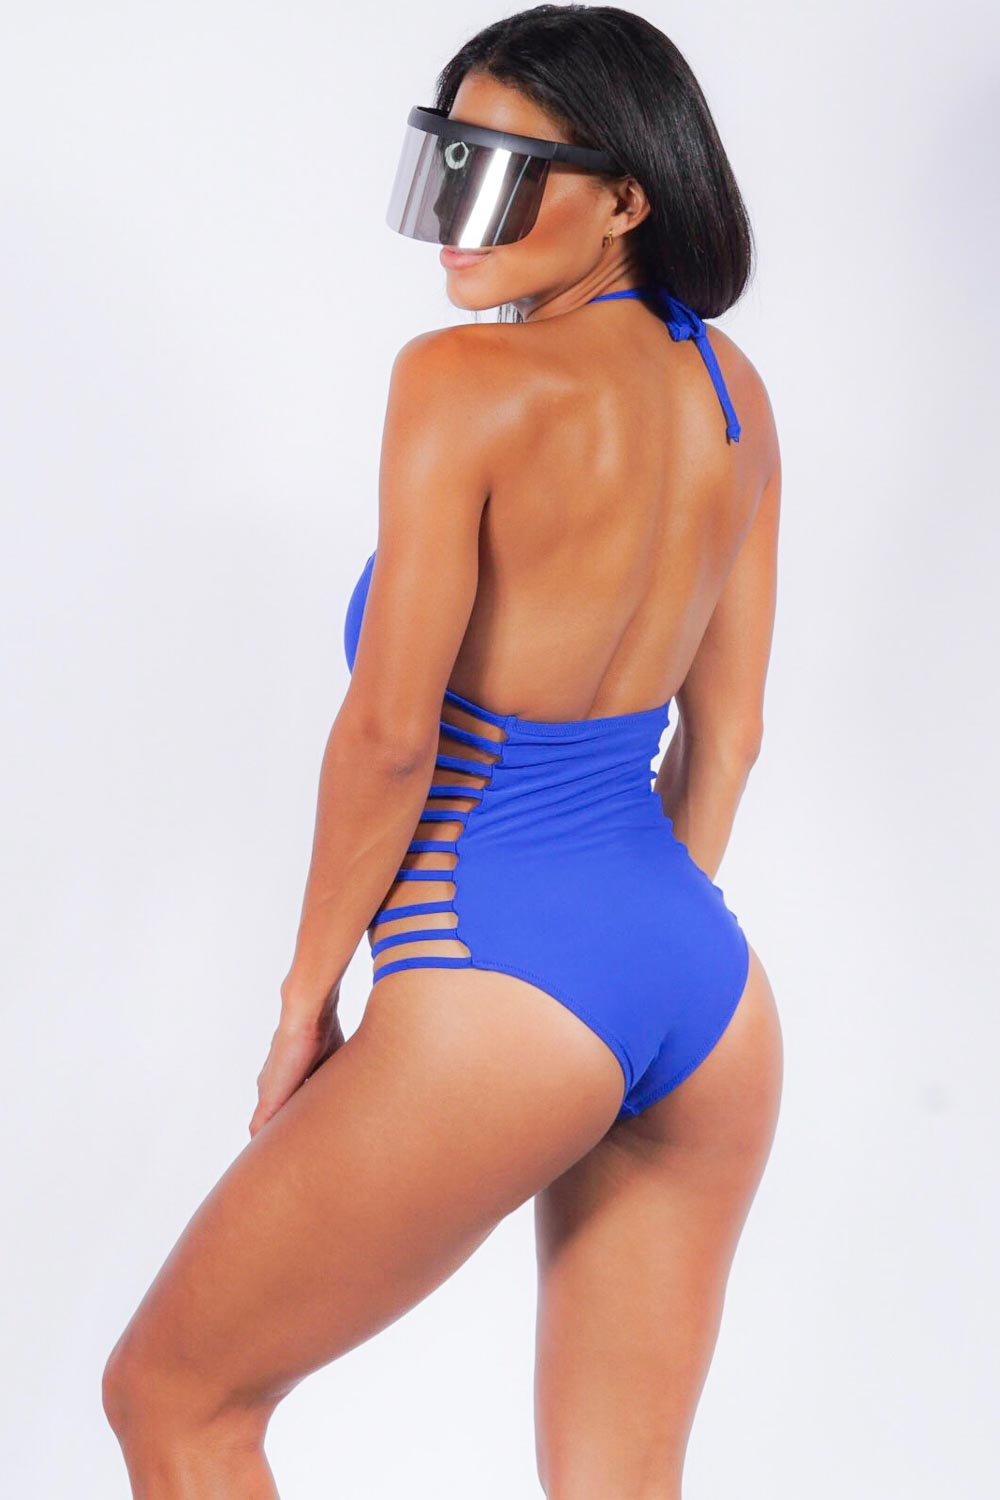 Maroubra Beach one piece, royal